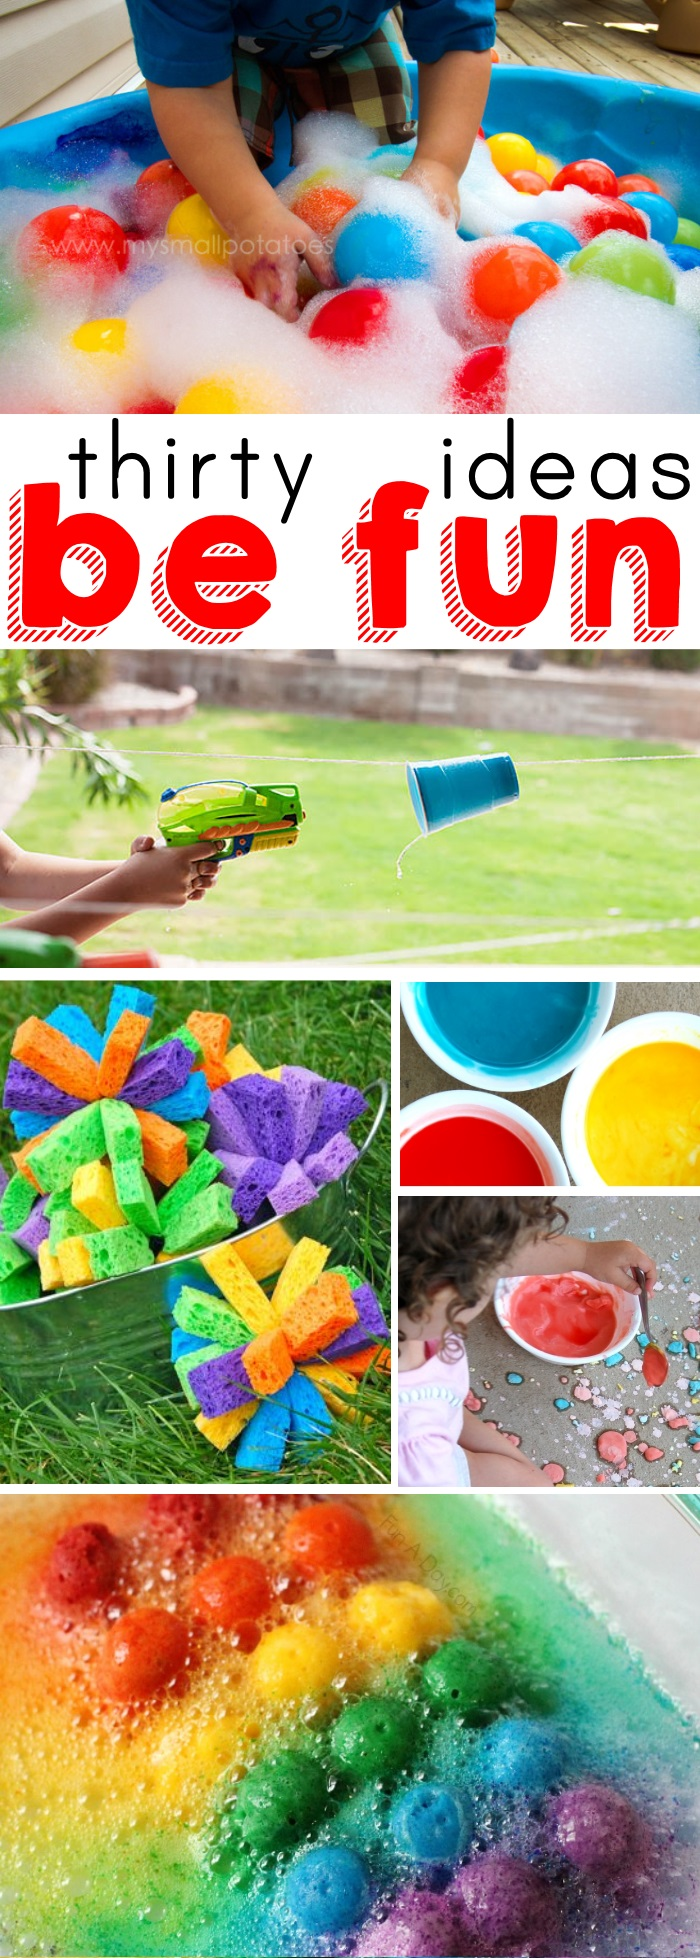 Summer ideas to keep the kids busy kids activities blog for Fun blog ideas